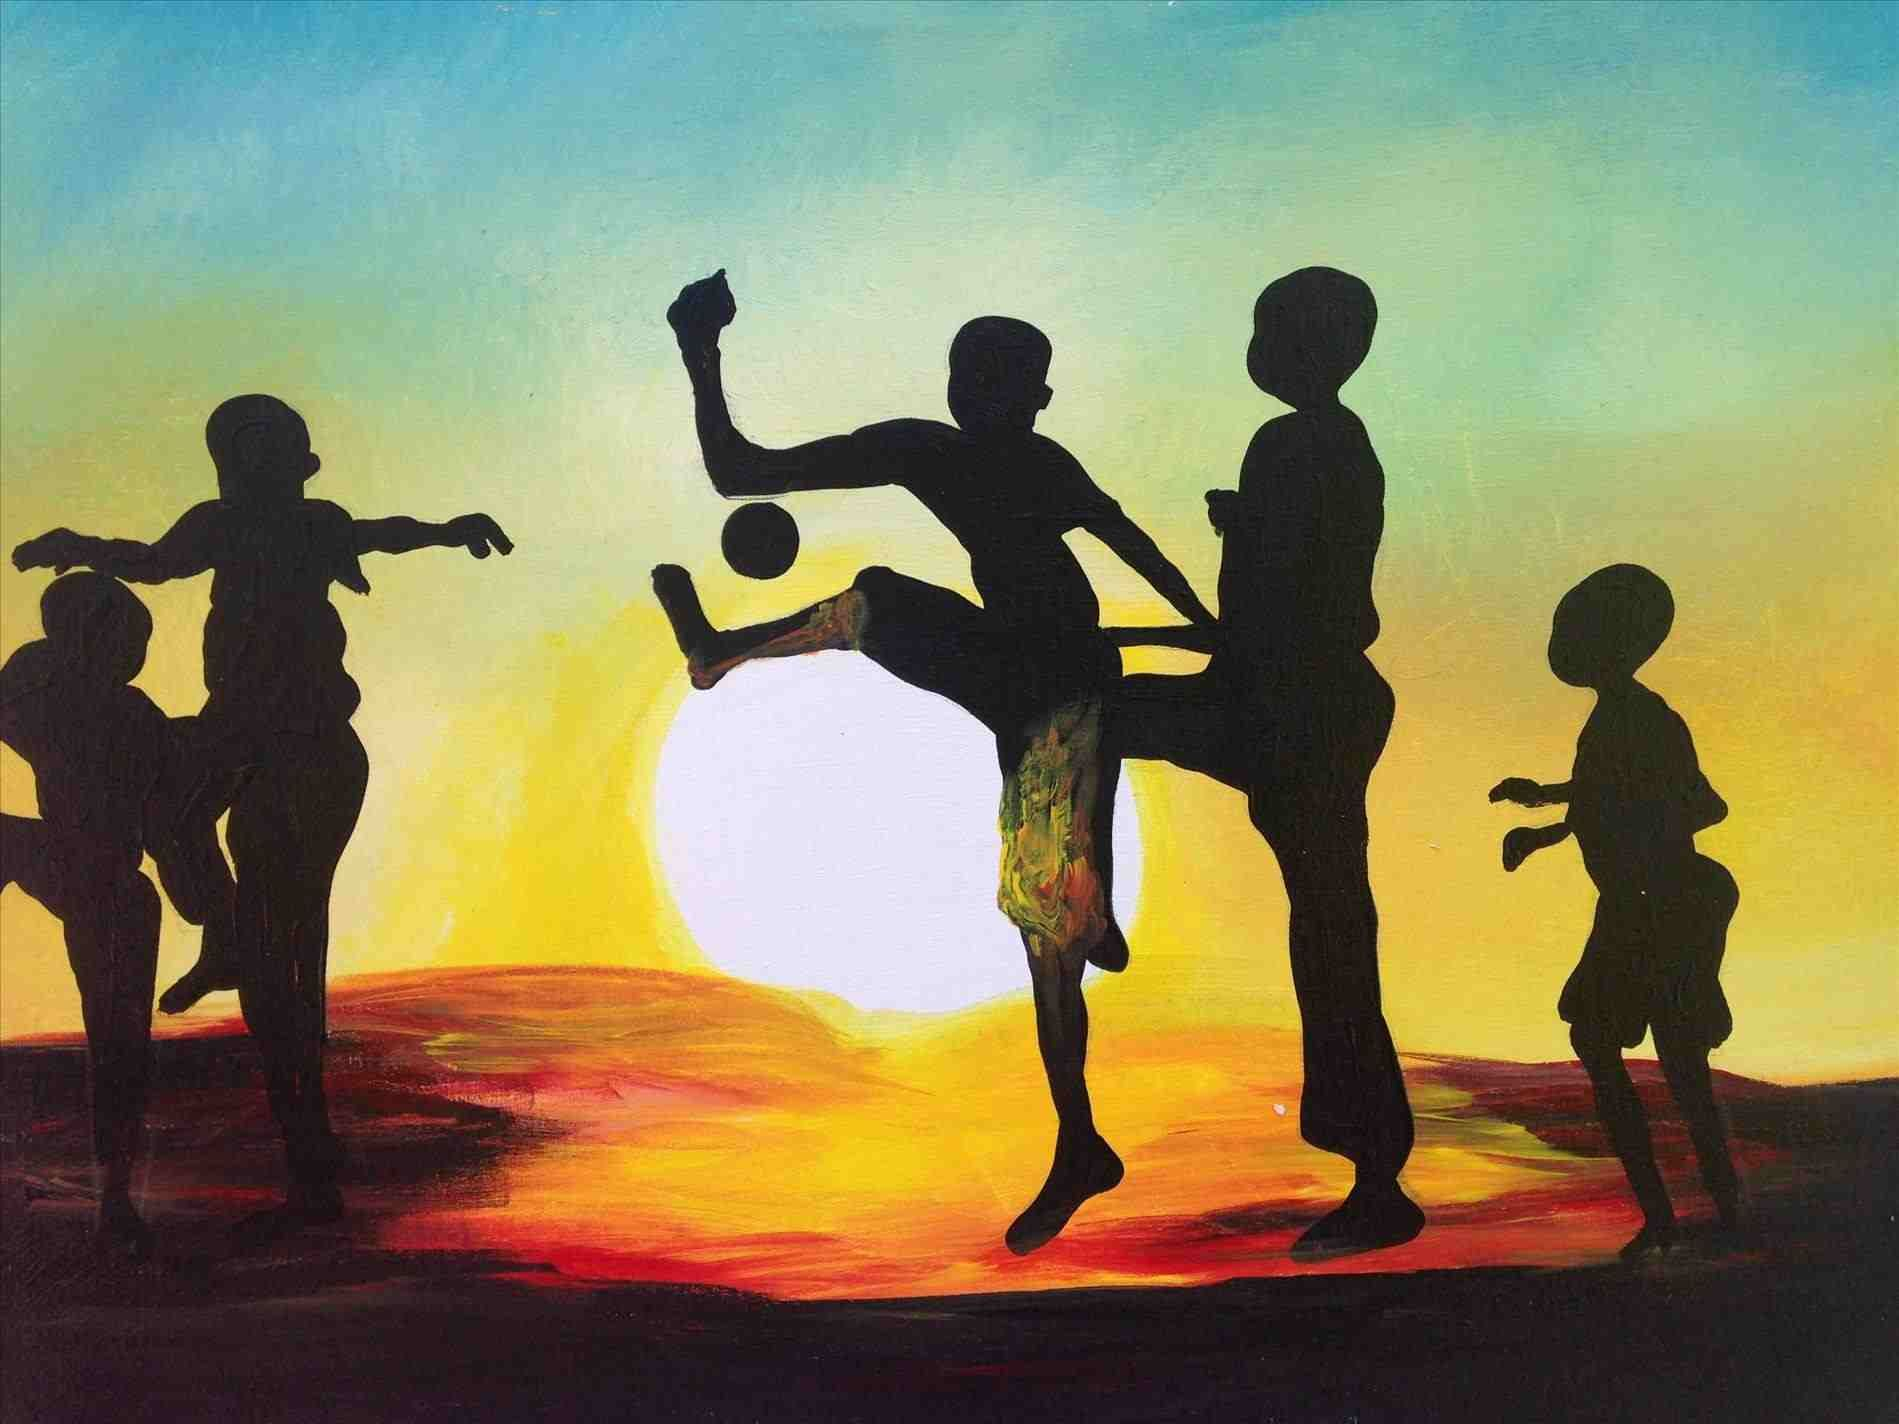 Human Silhouette Painting - silhouette city cleveland wall art ...